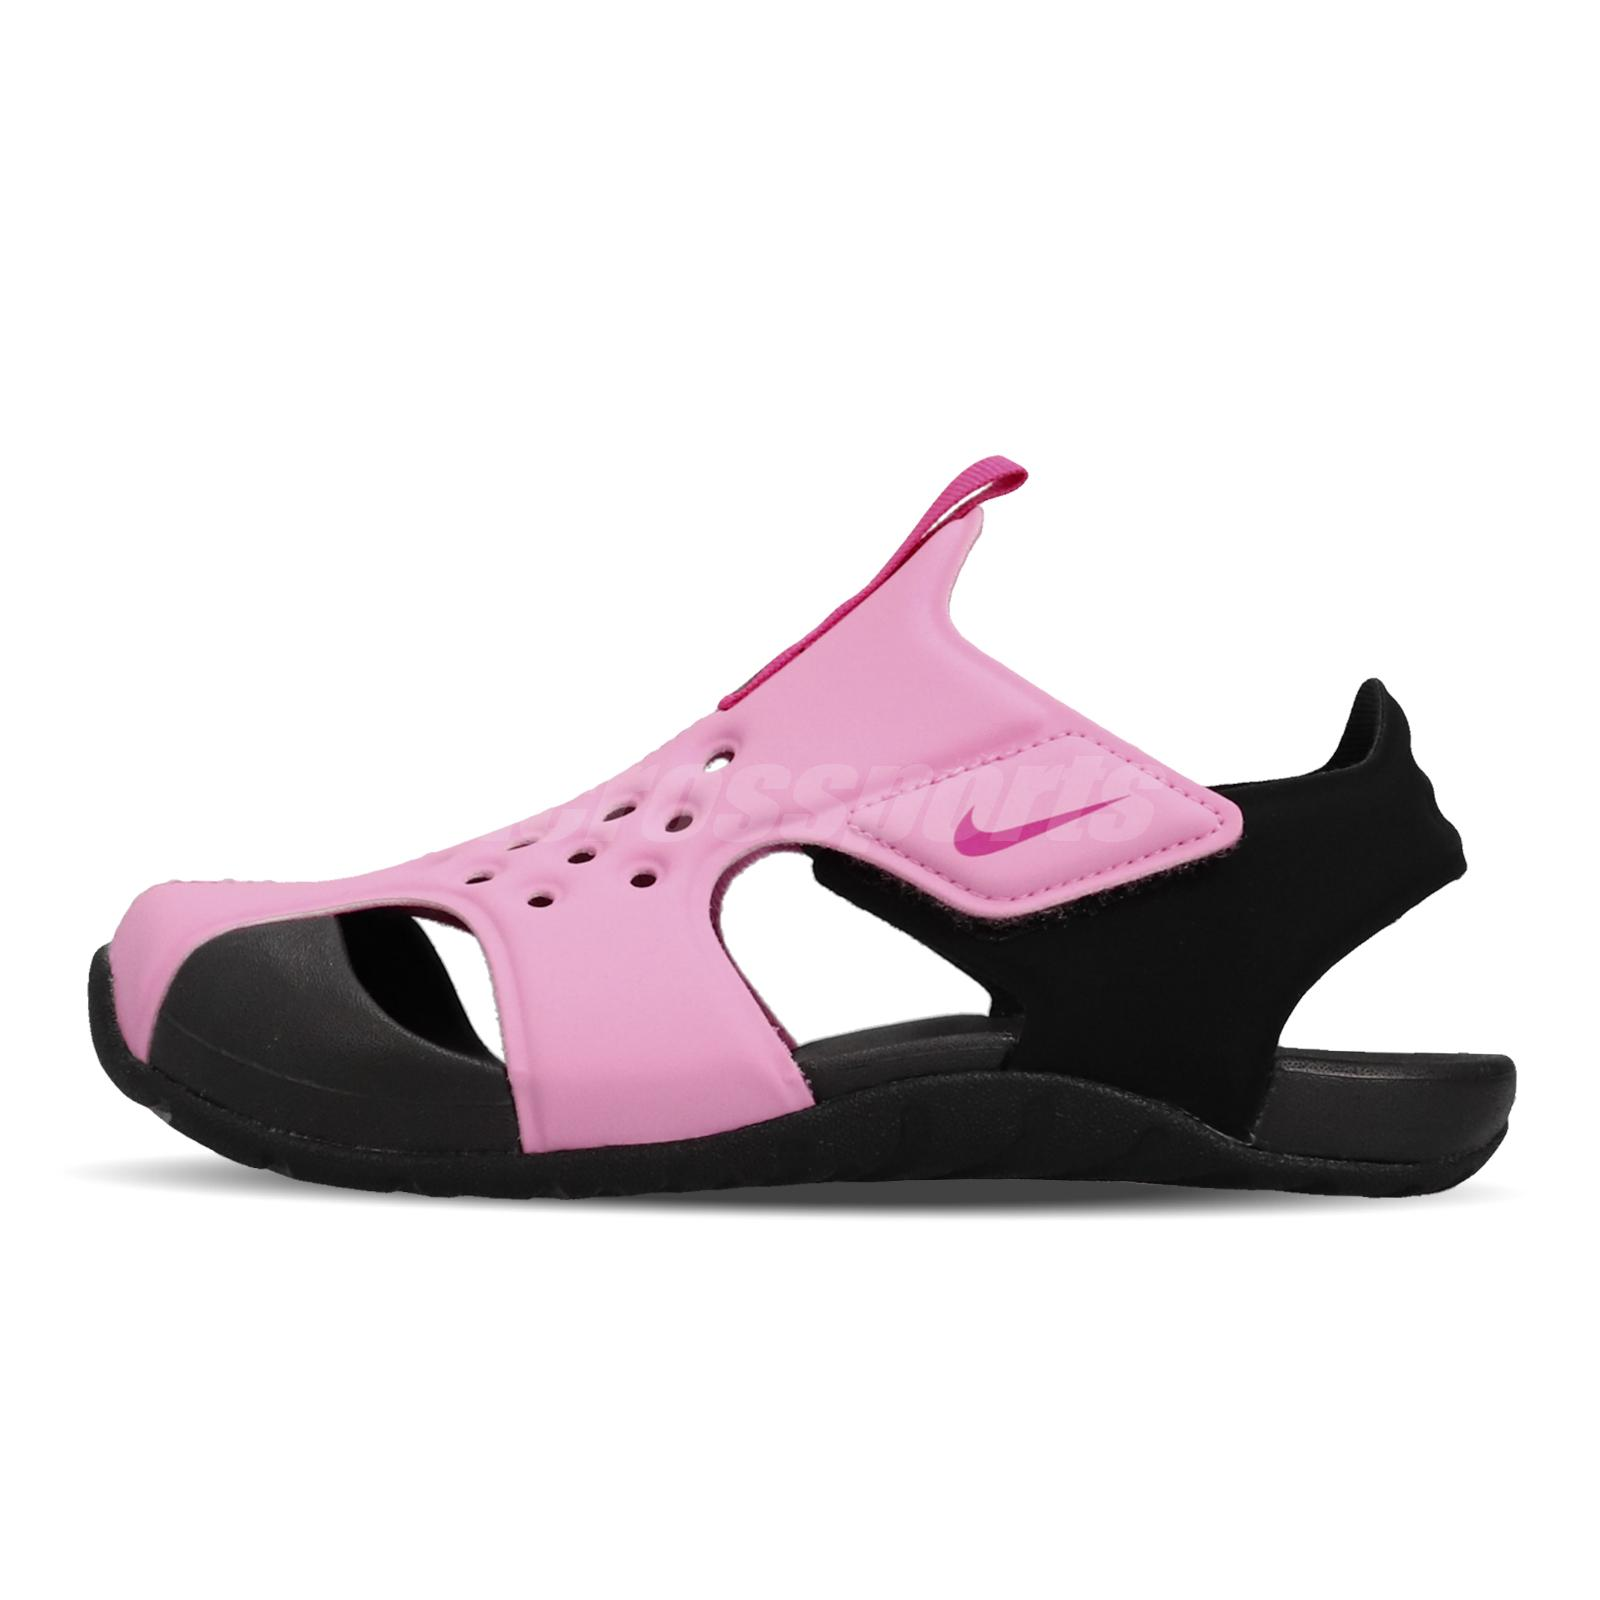 Details about Nike Sunray Protect 2 PS Pink Black Kid Preschool Sports Sandals Shoe 943826 602